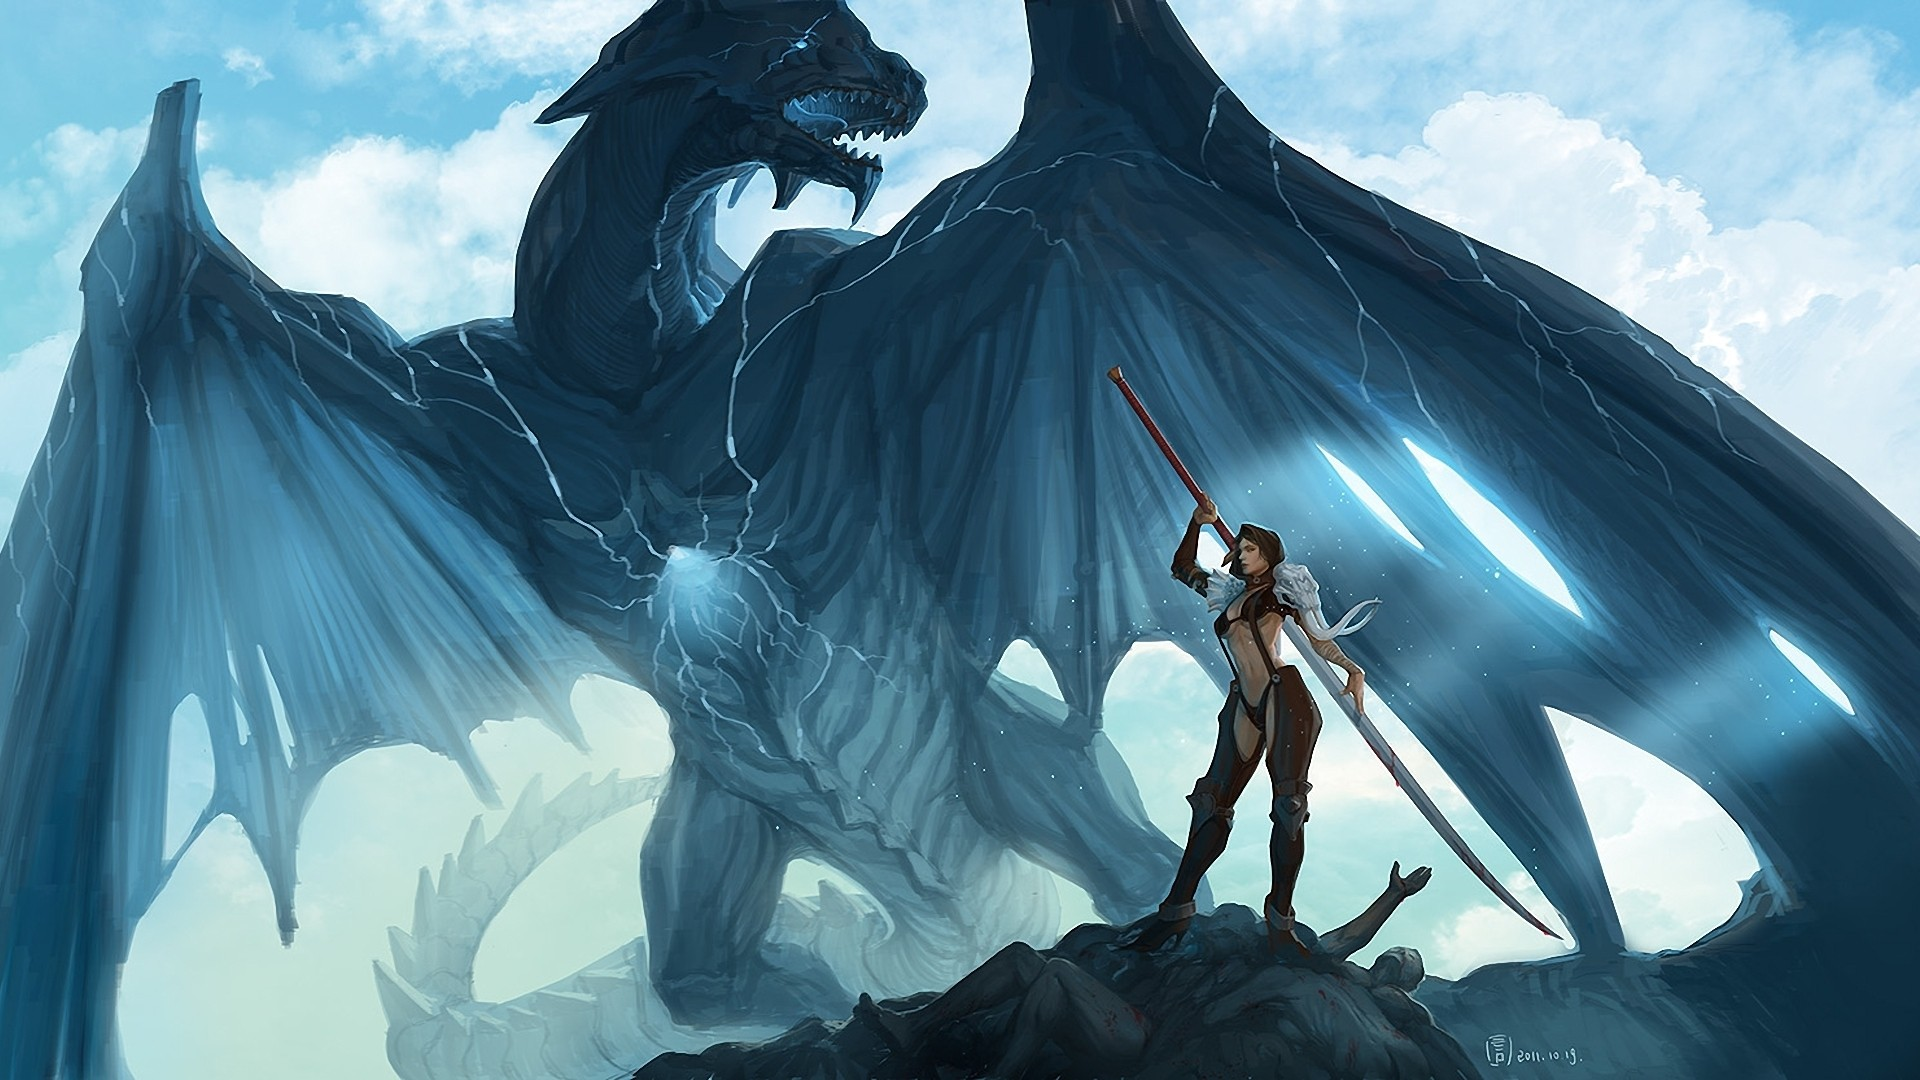 Fantasy Dragon   Anime Animated Wallpapers Best HD Wallpapers 1920x1080